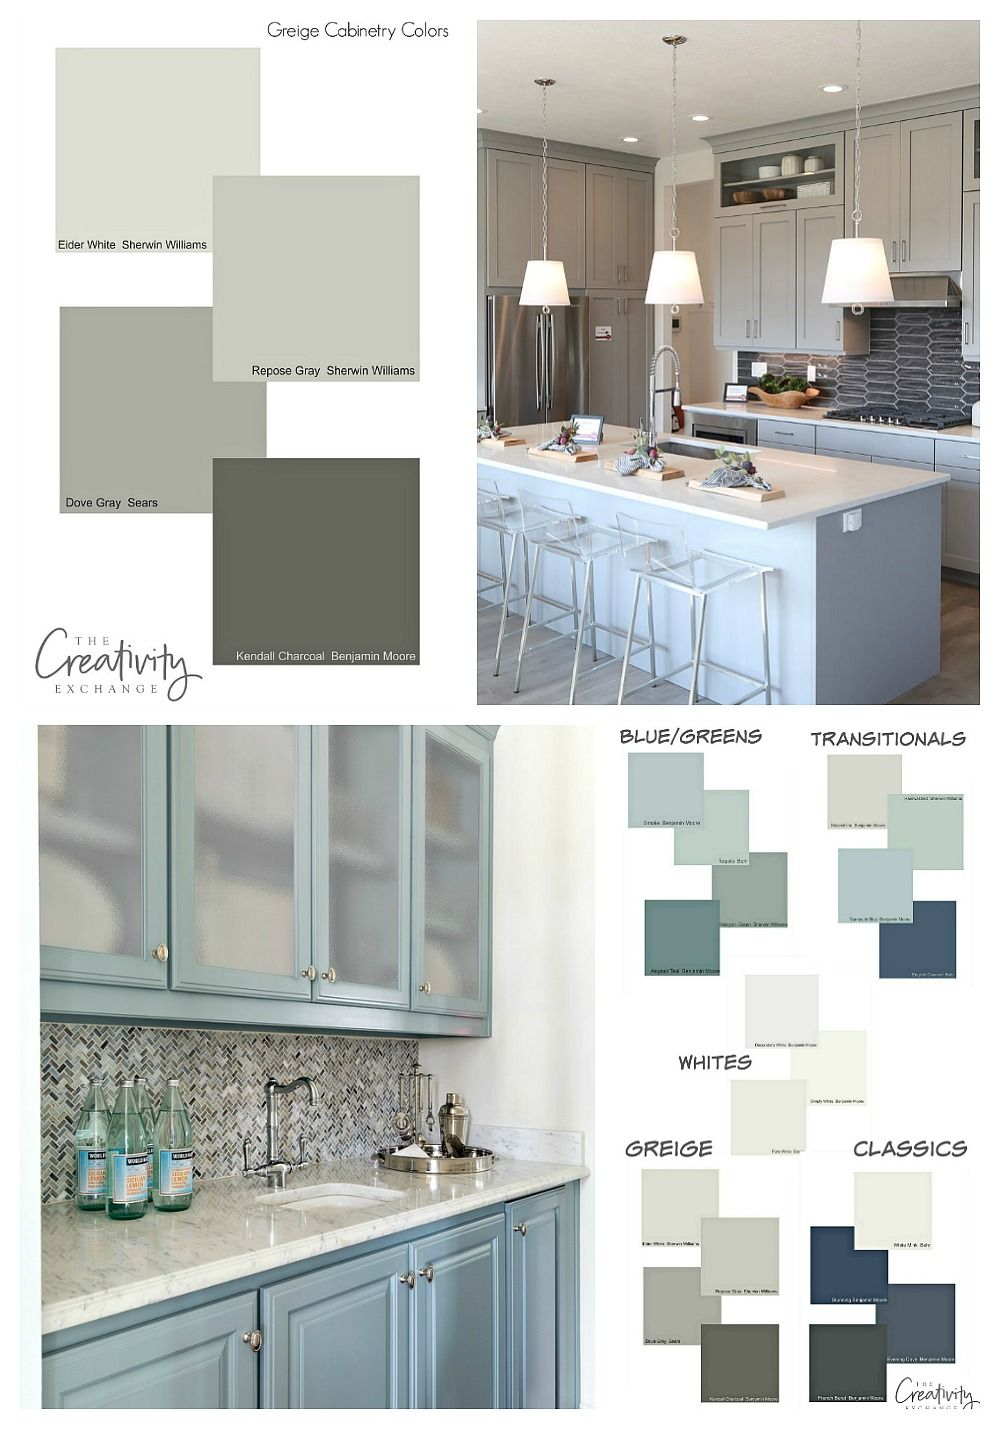 Cabinet Paint Color Trends And How To Choose Timeless Colors Painted Kitchen Cabinets Colors Painting Cabinets Cabinet Paint Colors